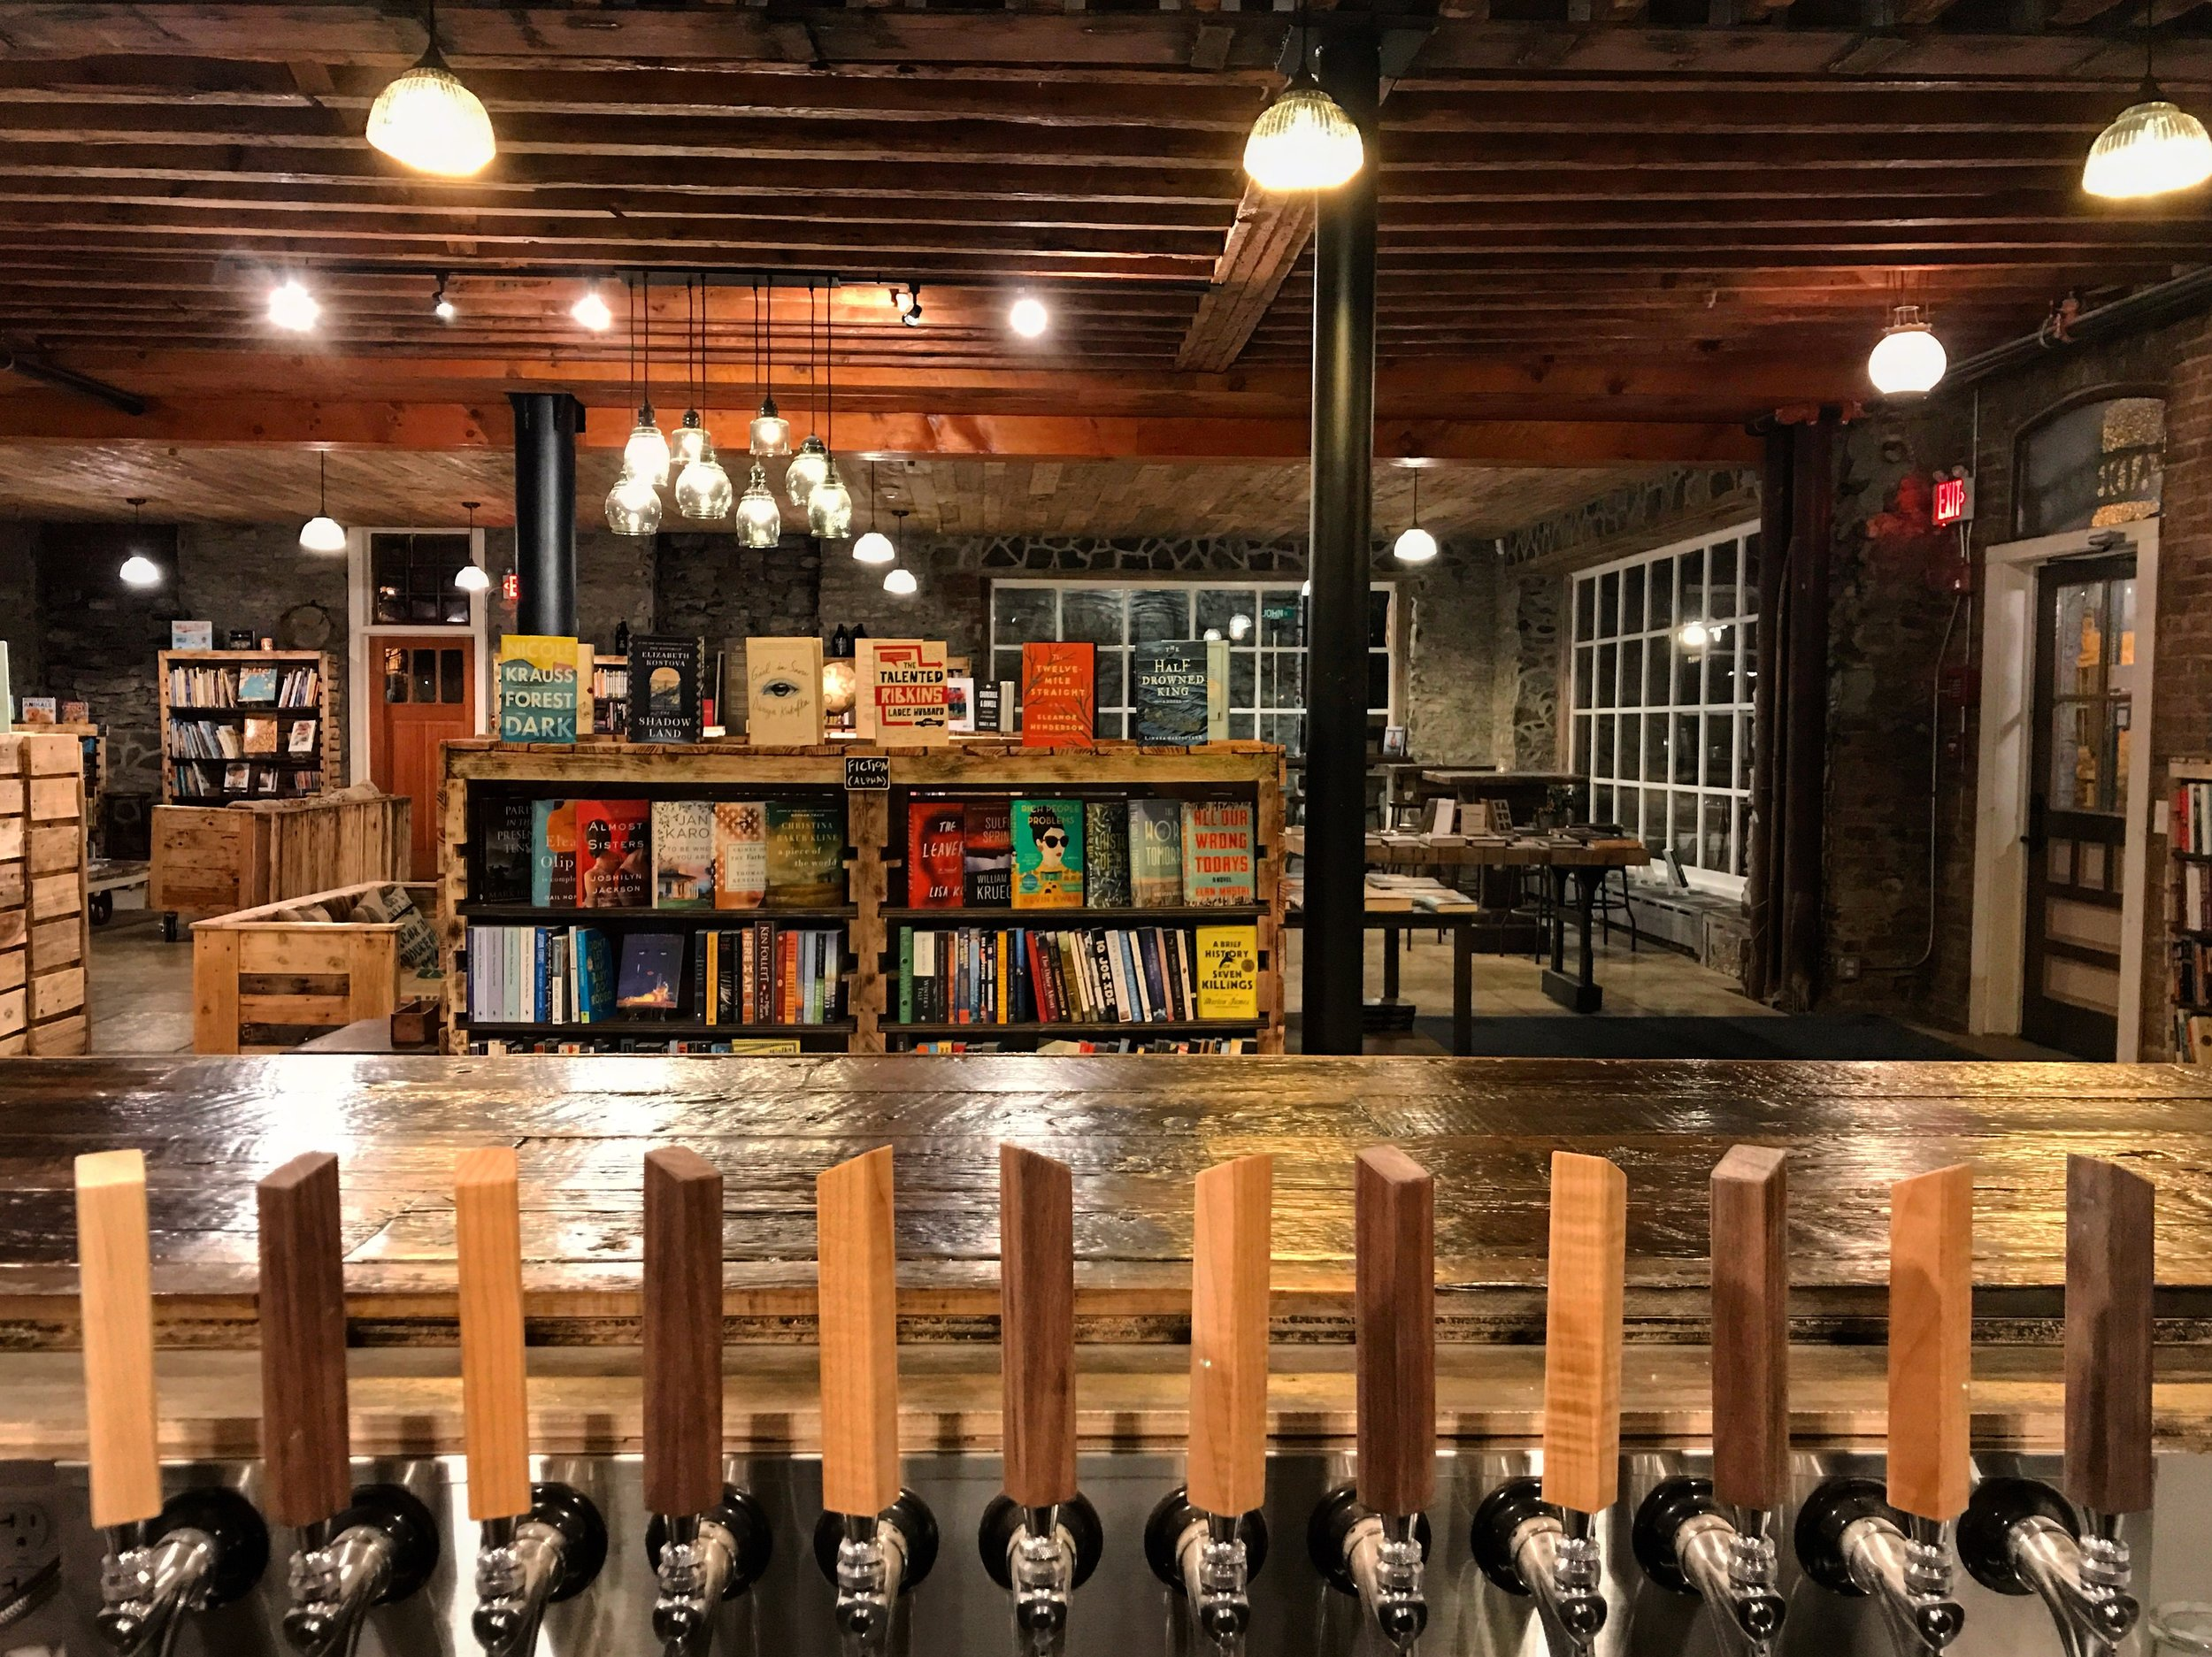 Rough Draft Bar & Books, Kingston, NY